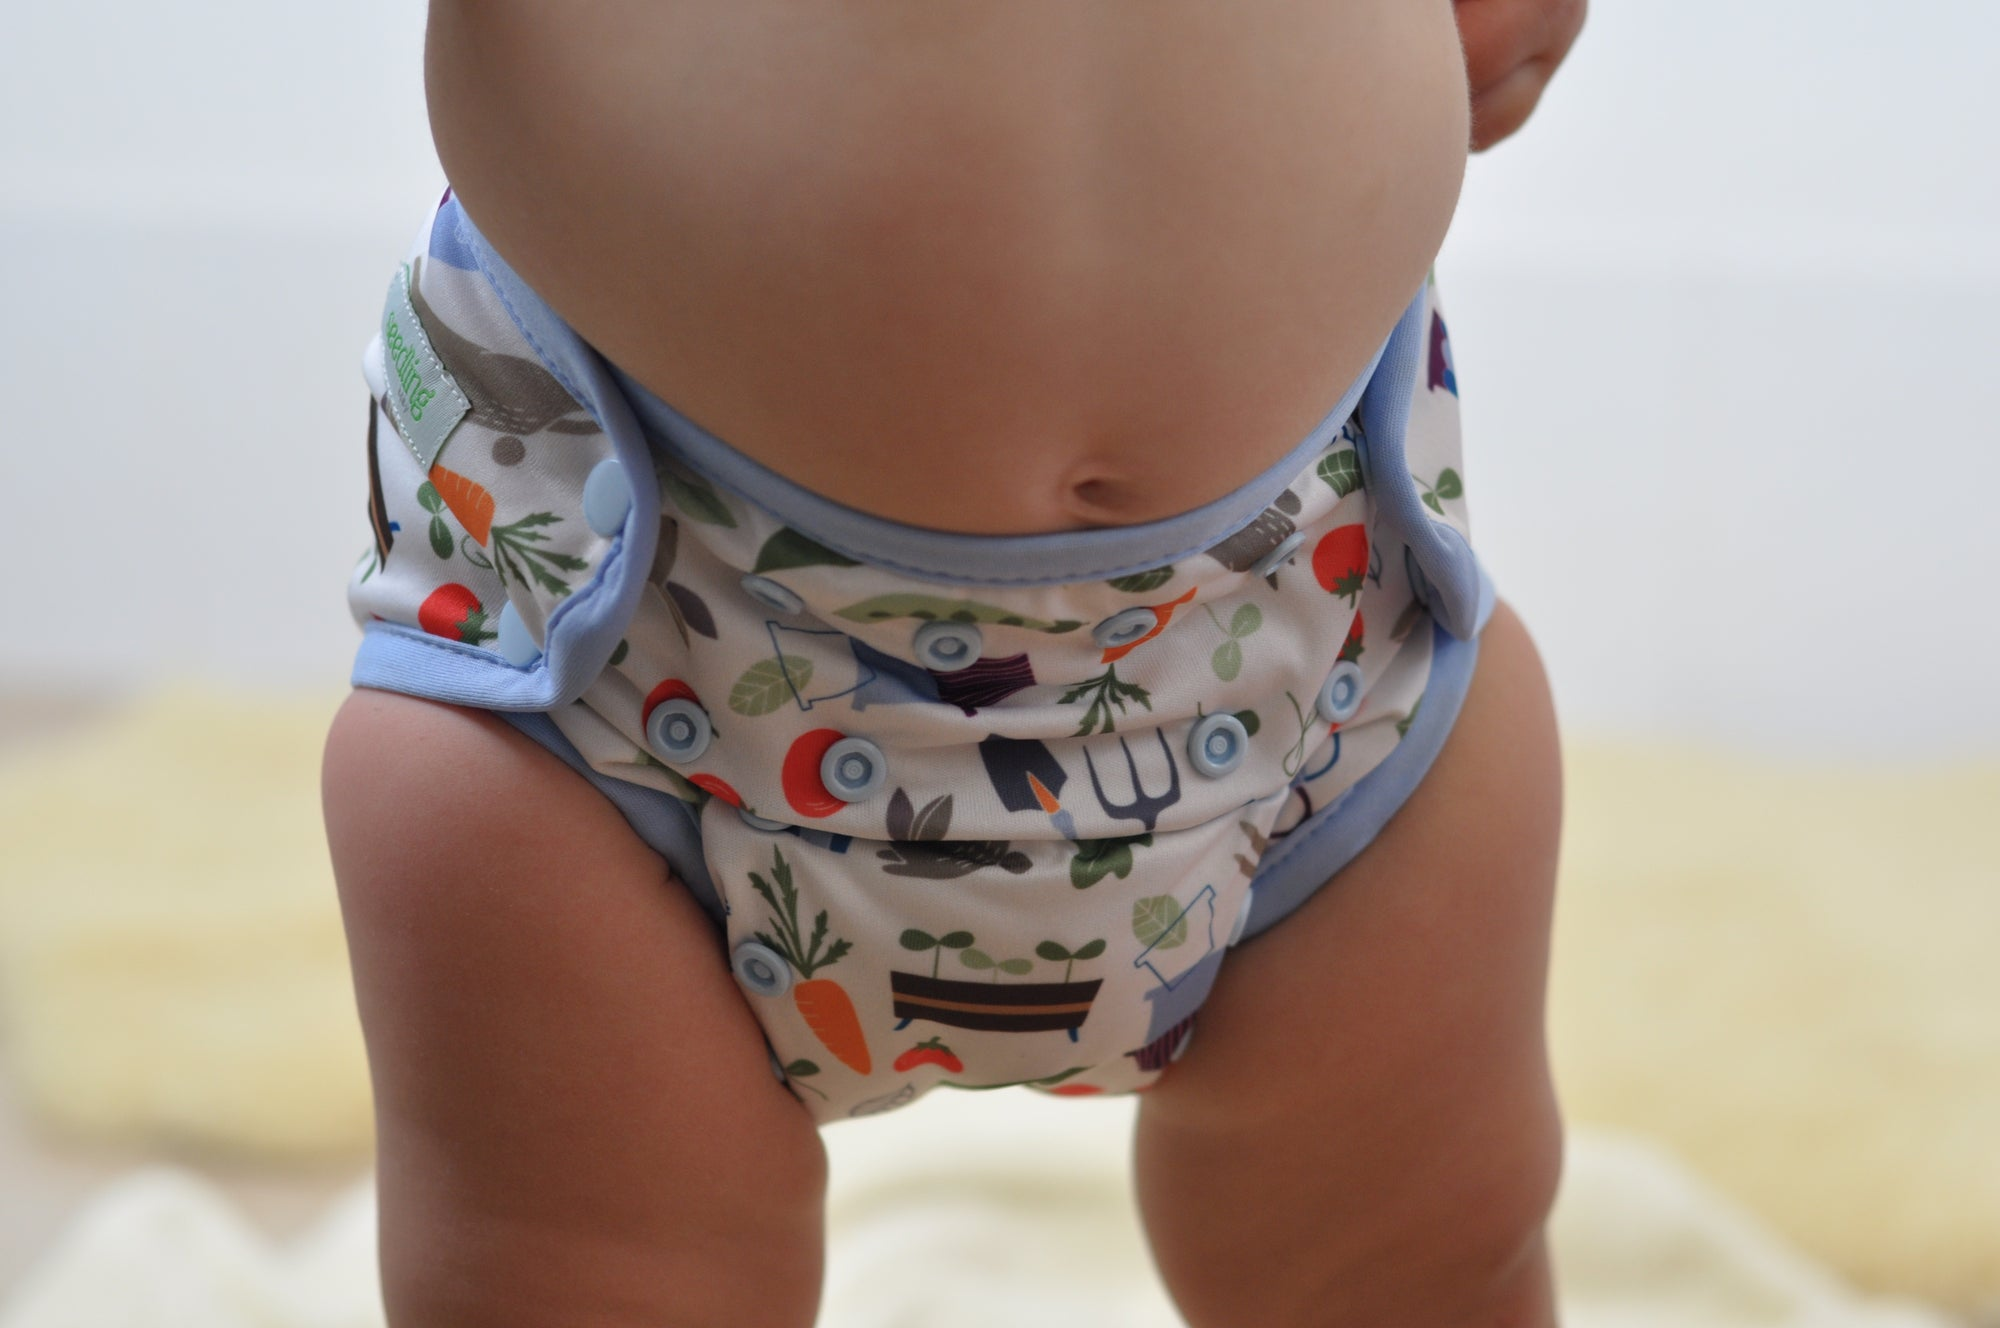 Winter Cloth Nappying Tips: The Complete Guide to Using Reusable Nappies When it's Cold